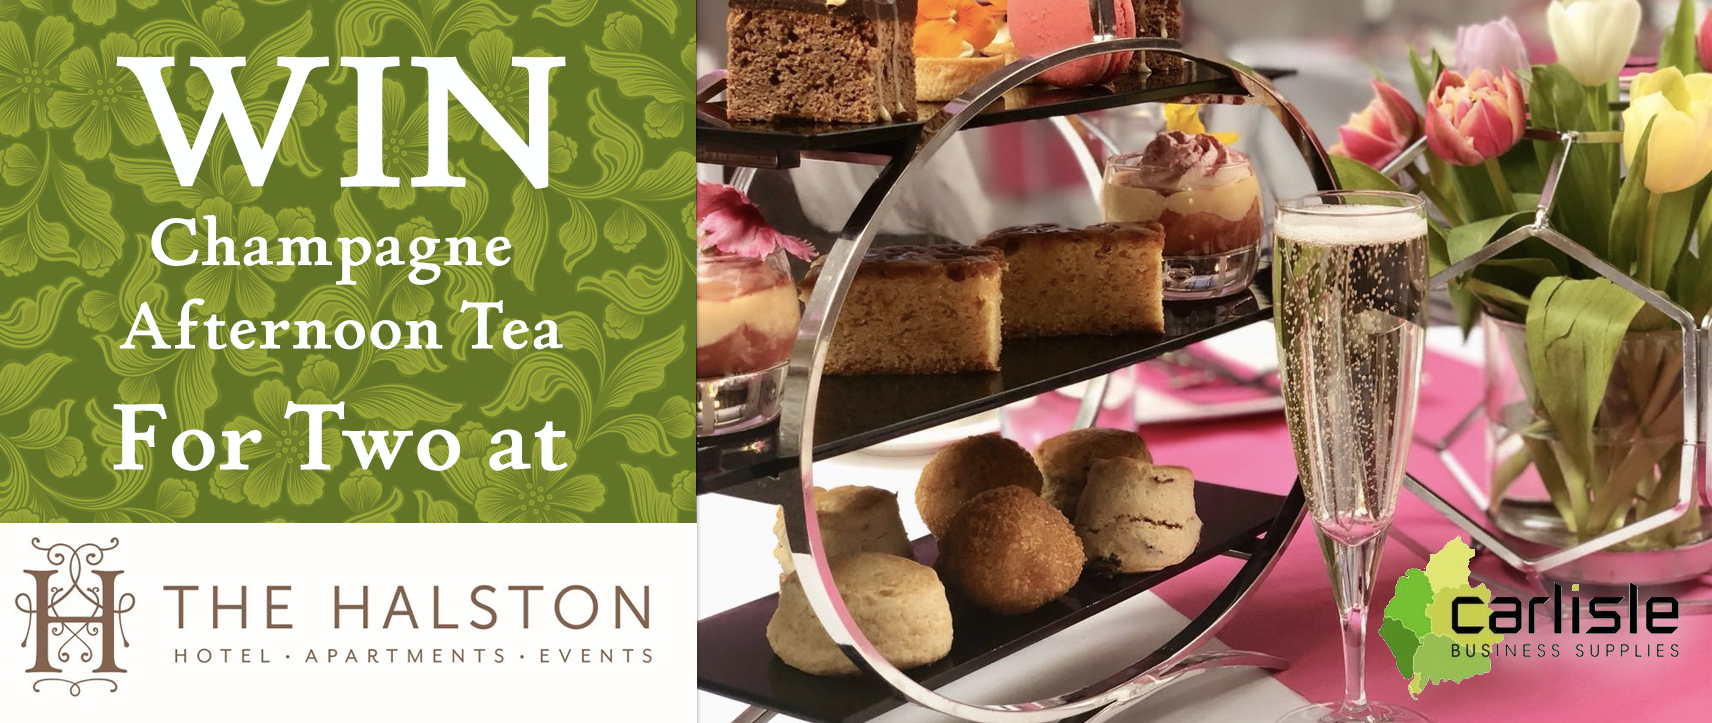 WIN Champagne Afternoon Tea for Two!